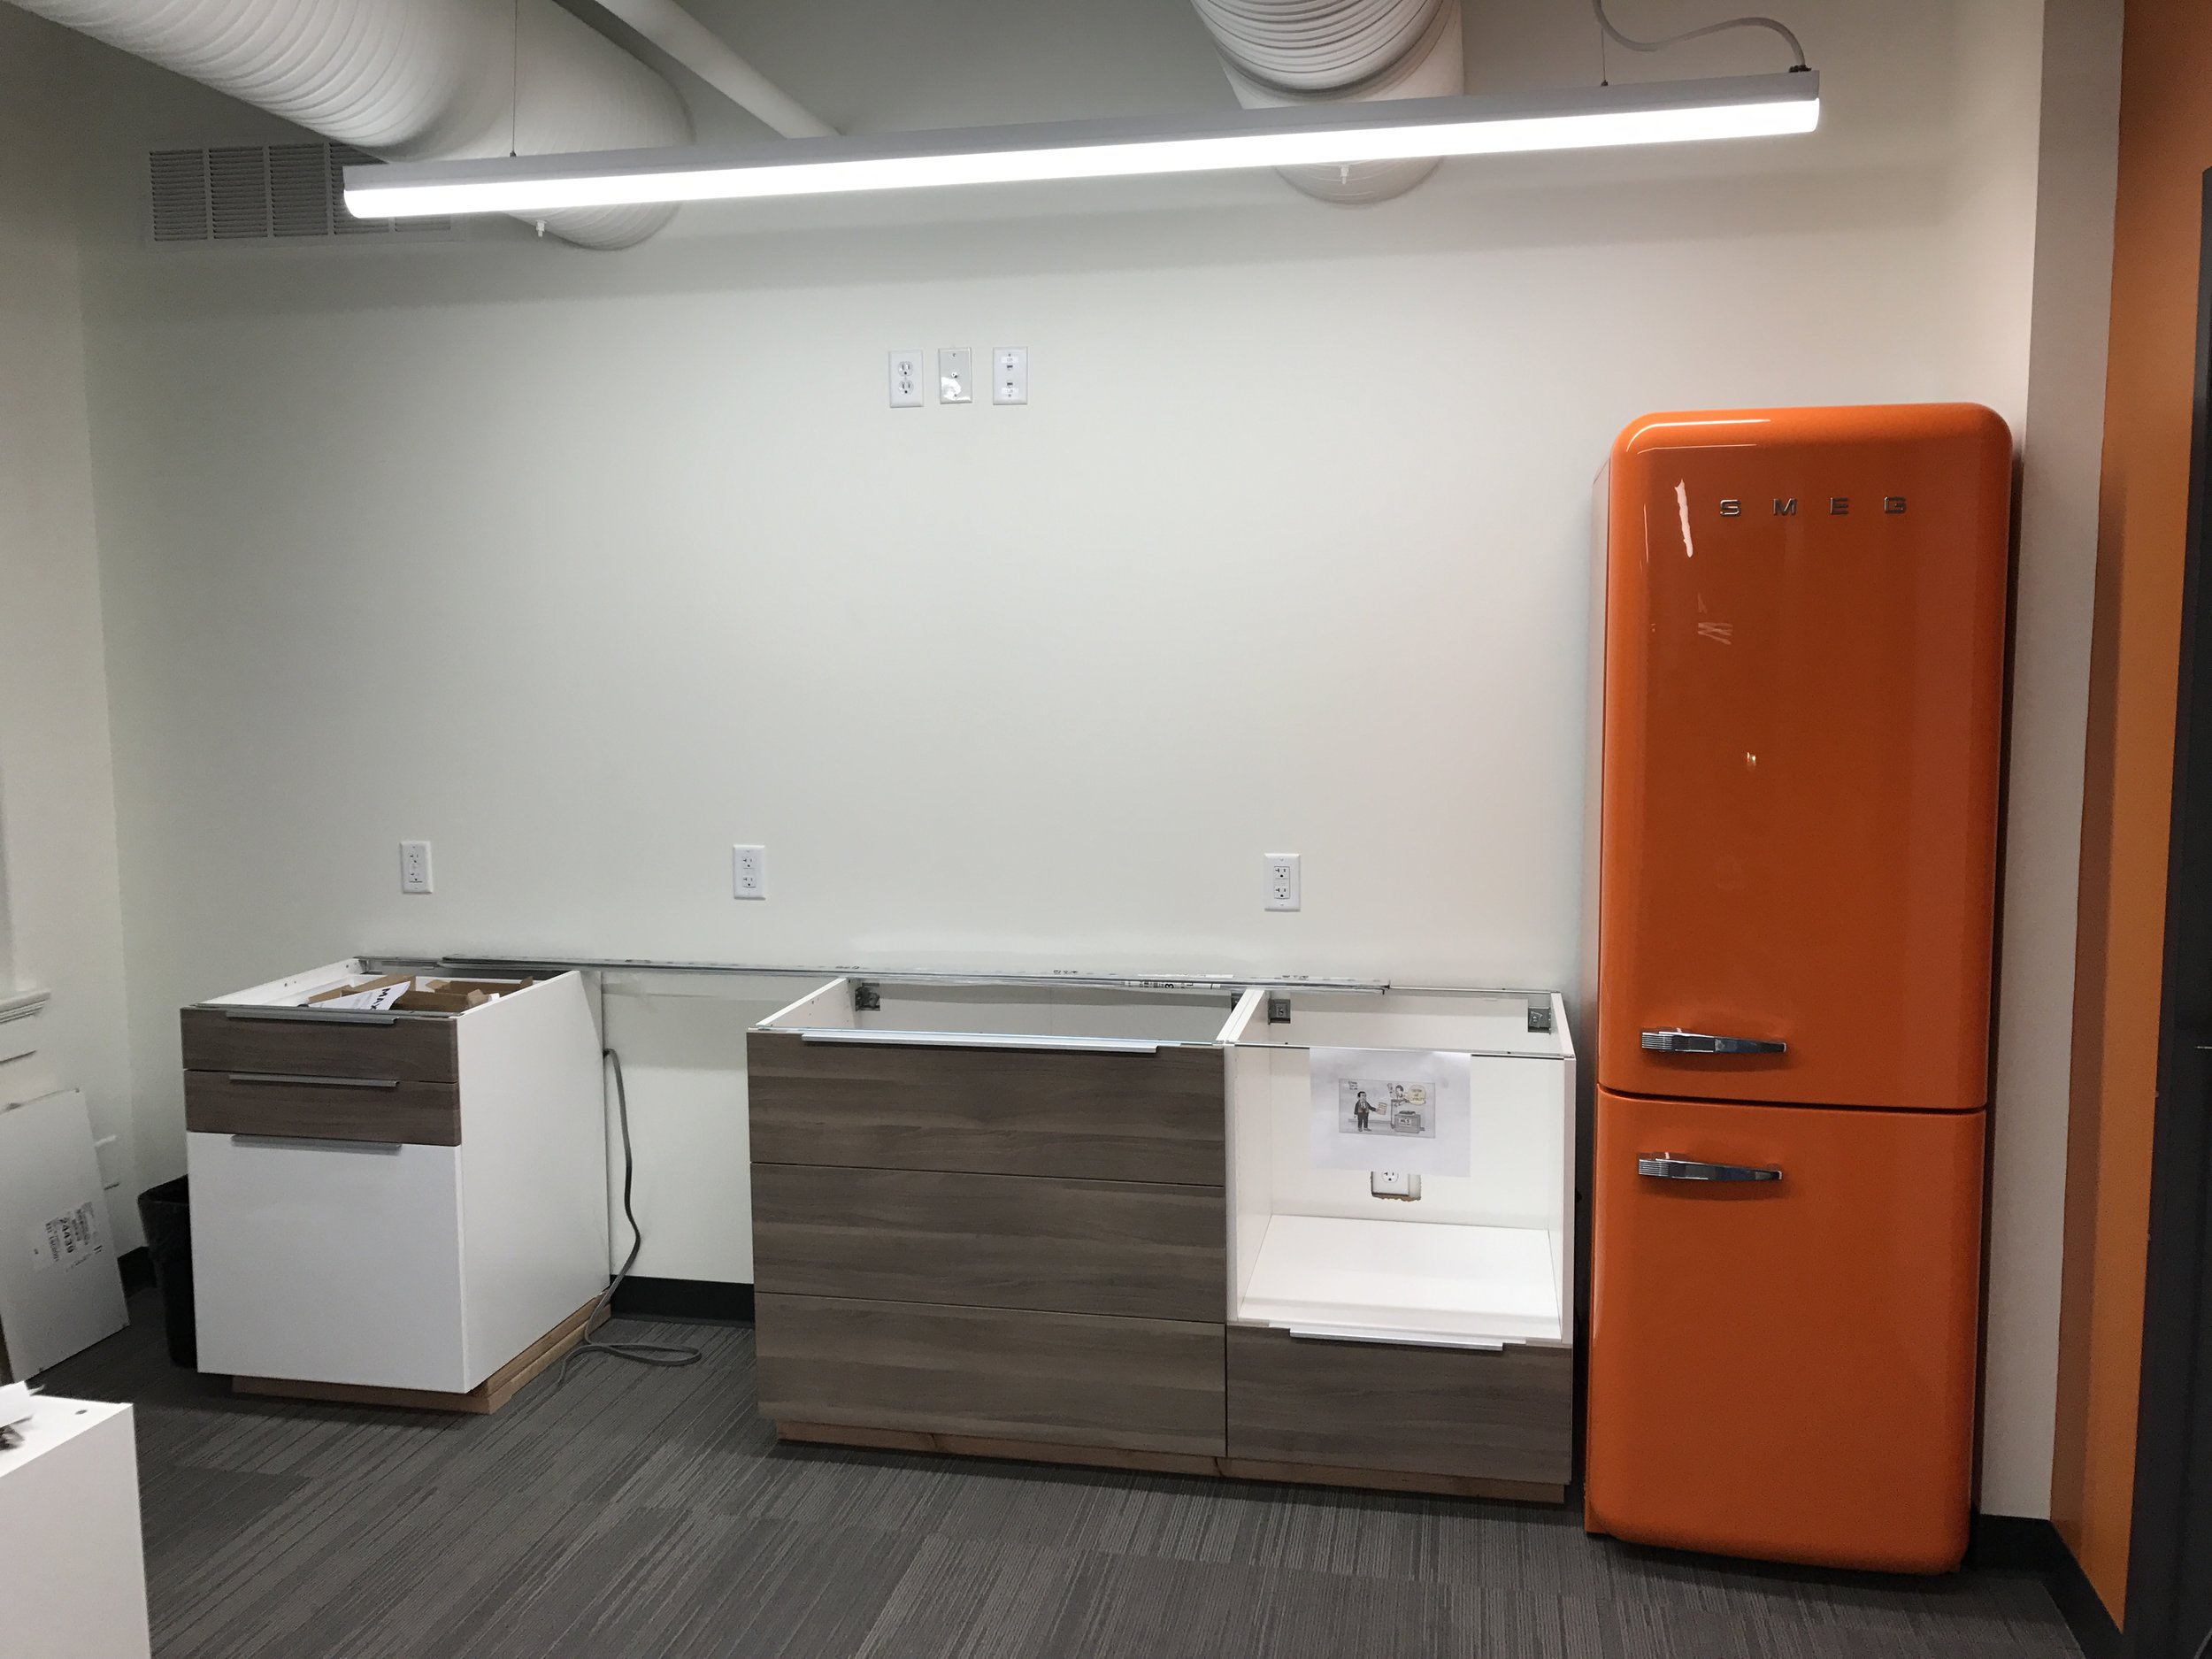 The office kitchen during construction